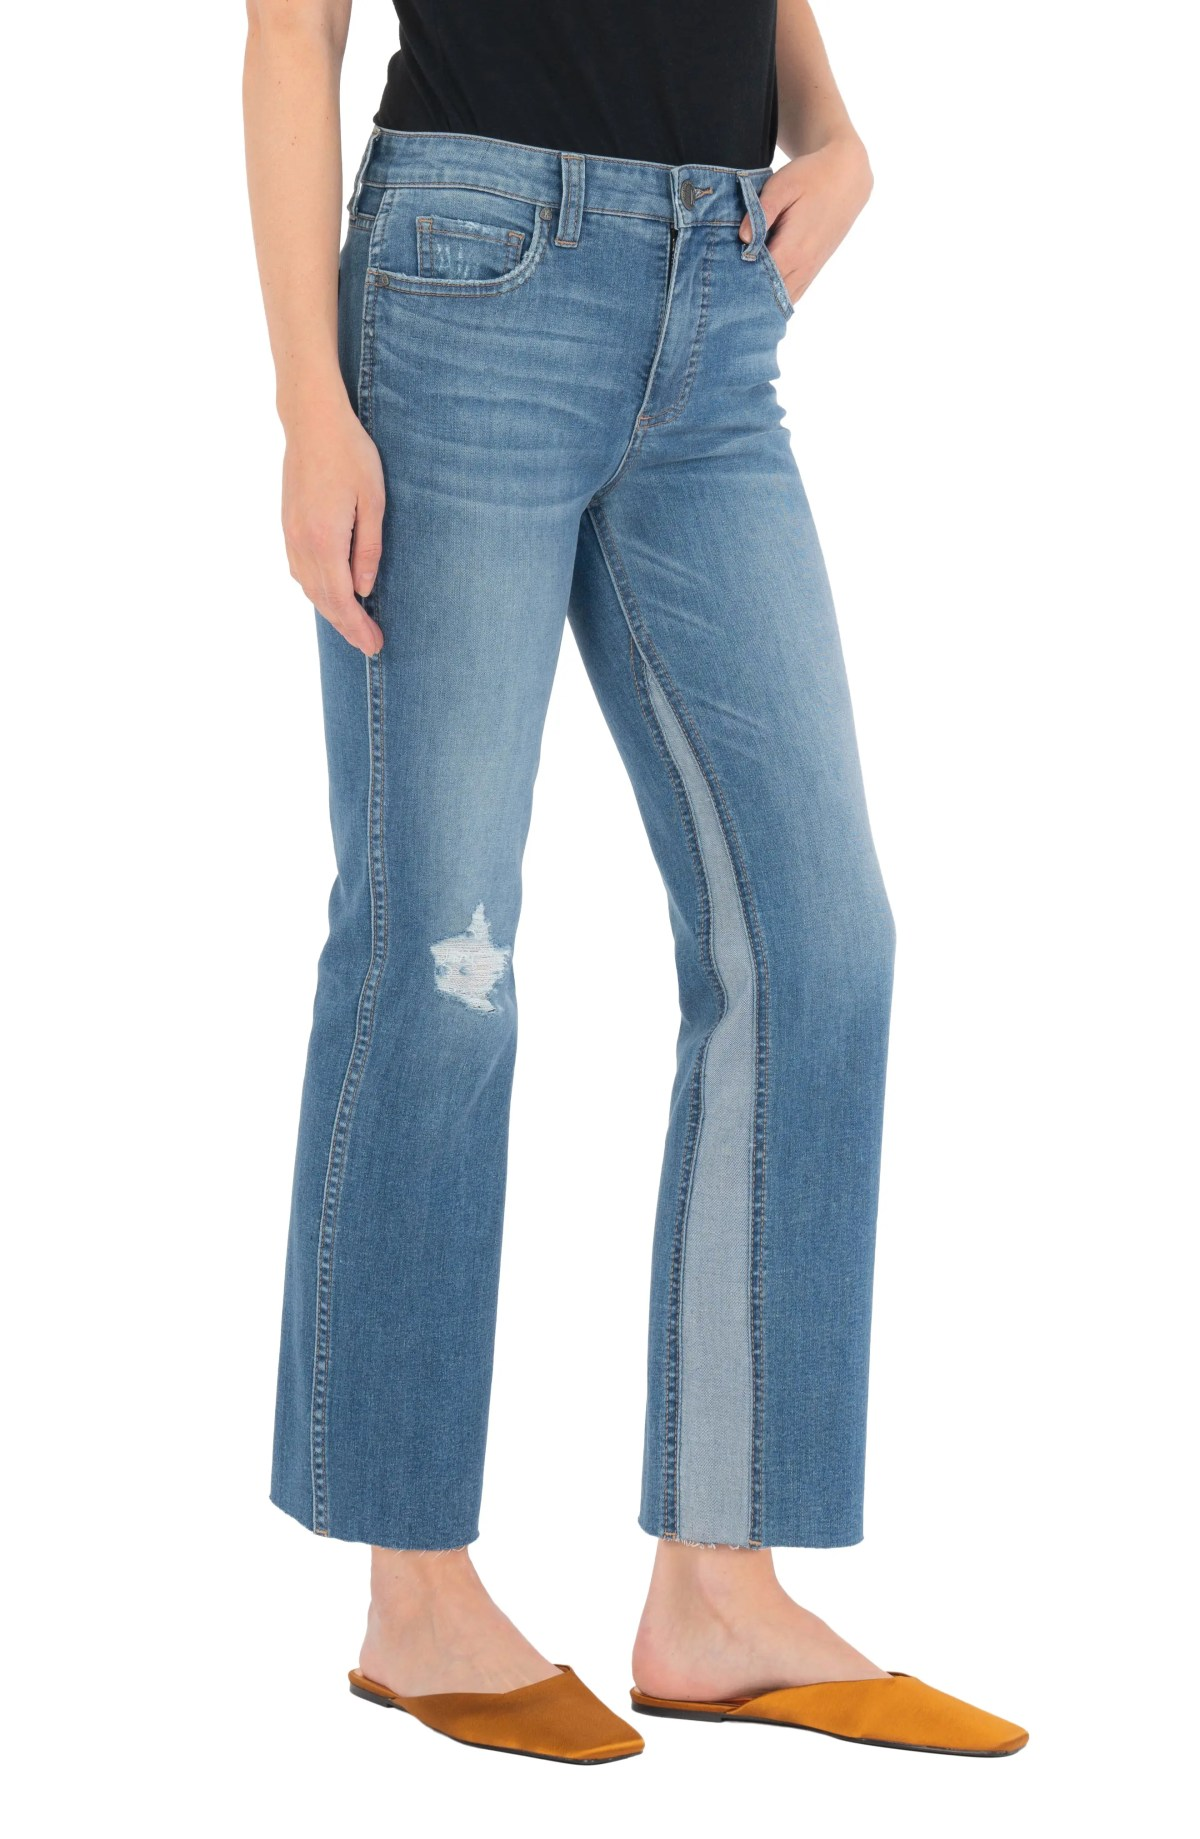 KUT FROM THE KLOTH Kelsey Fab Ab Inset High Waist Ankle Flare Jeans, Main, color, SPACIOUS